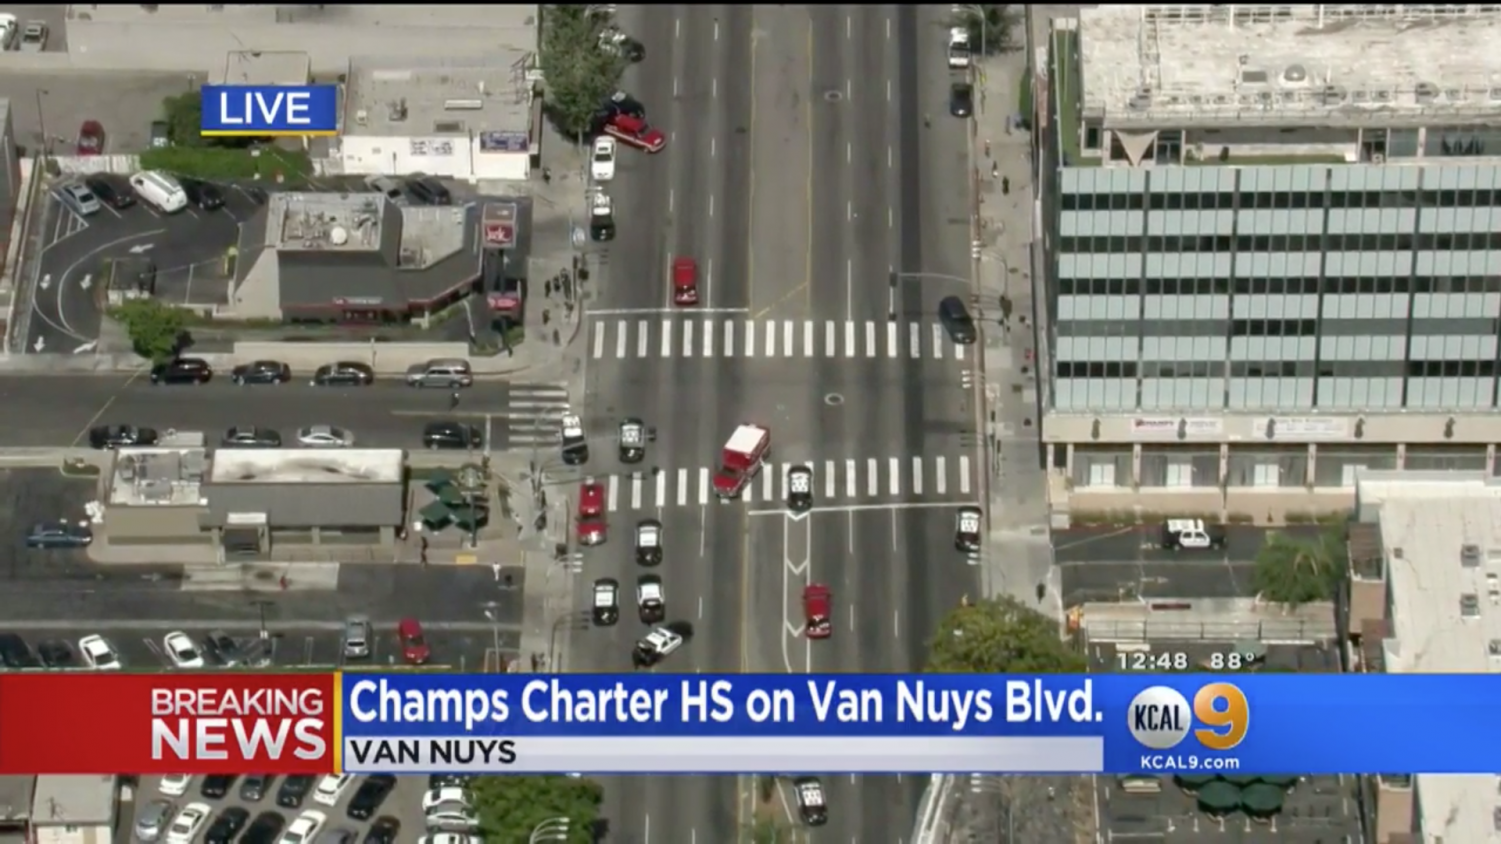 Aerial view of CHAMPS and the Jack in the Box from KCAL's News Helicopter.